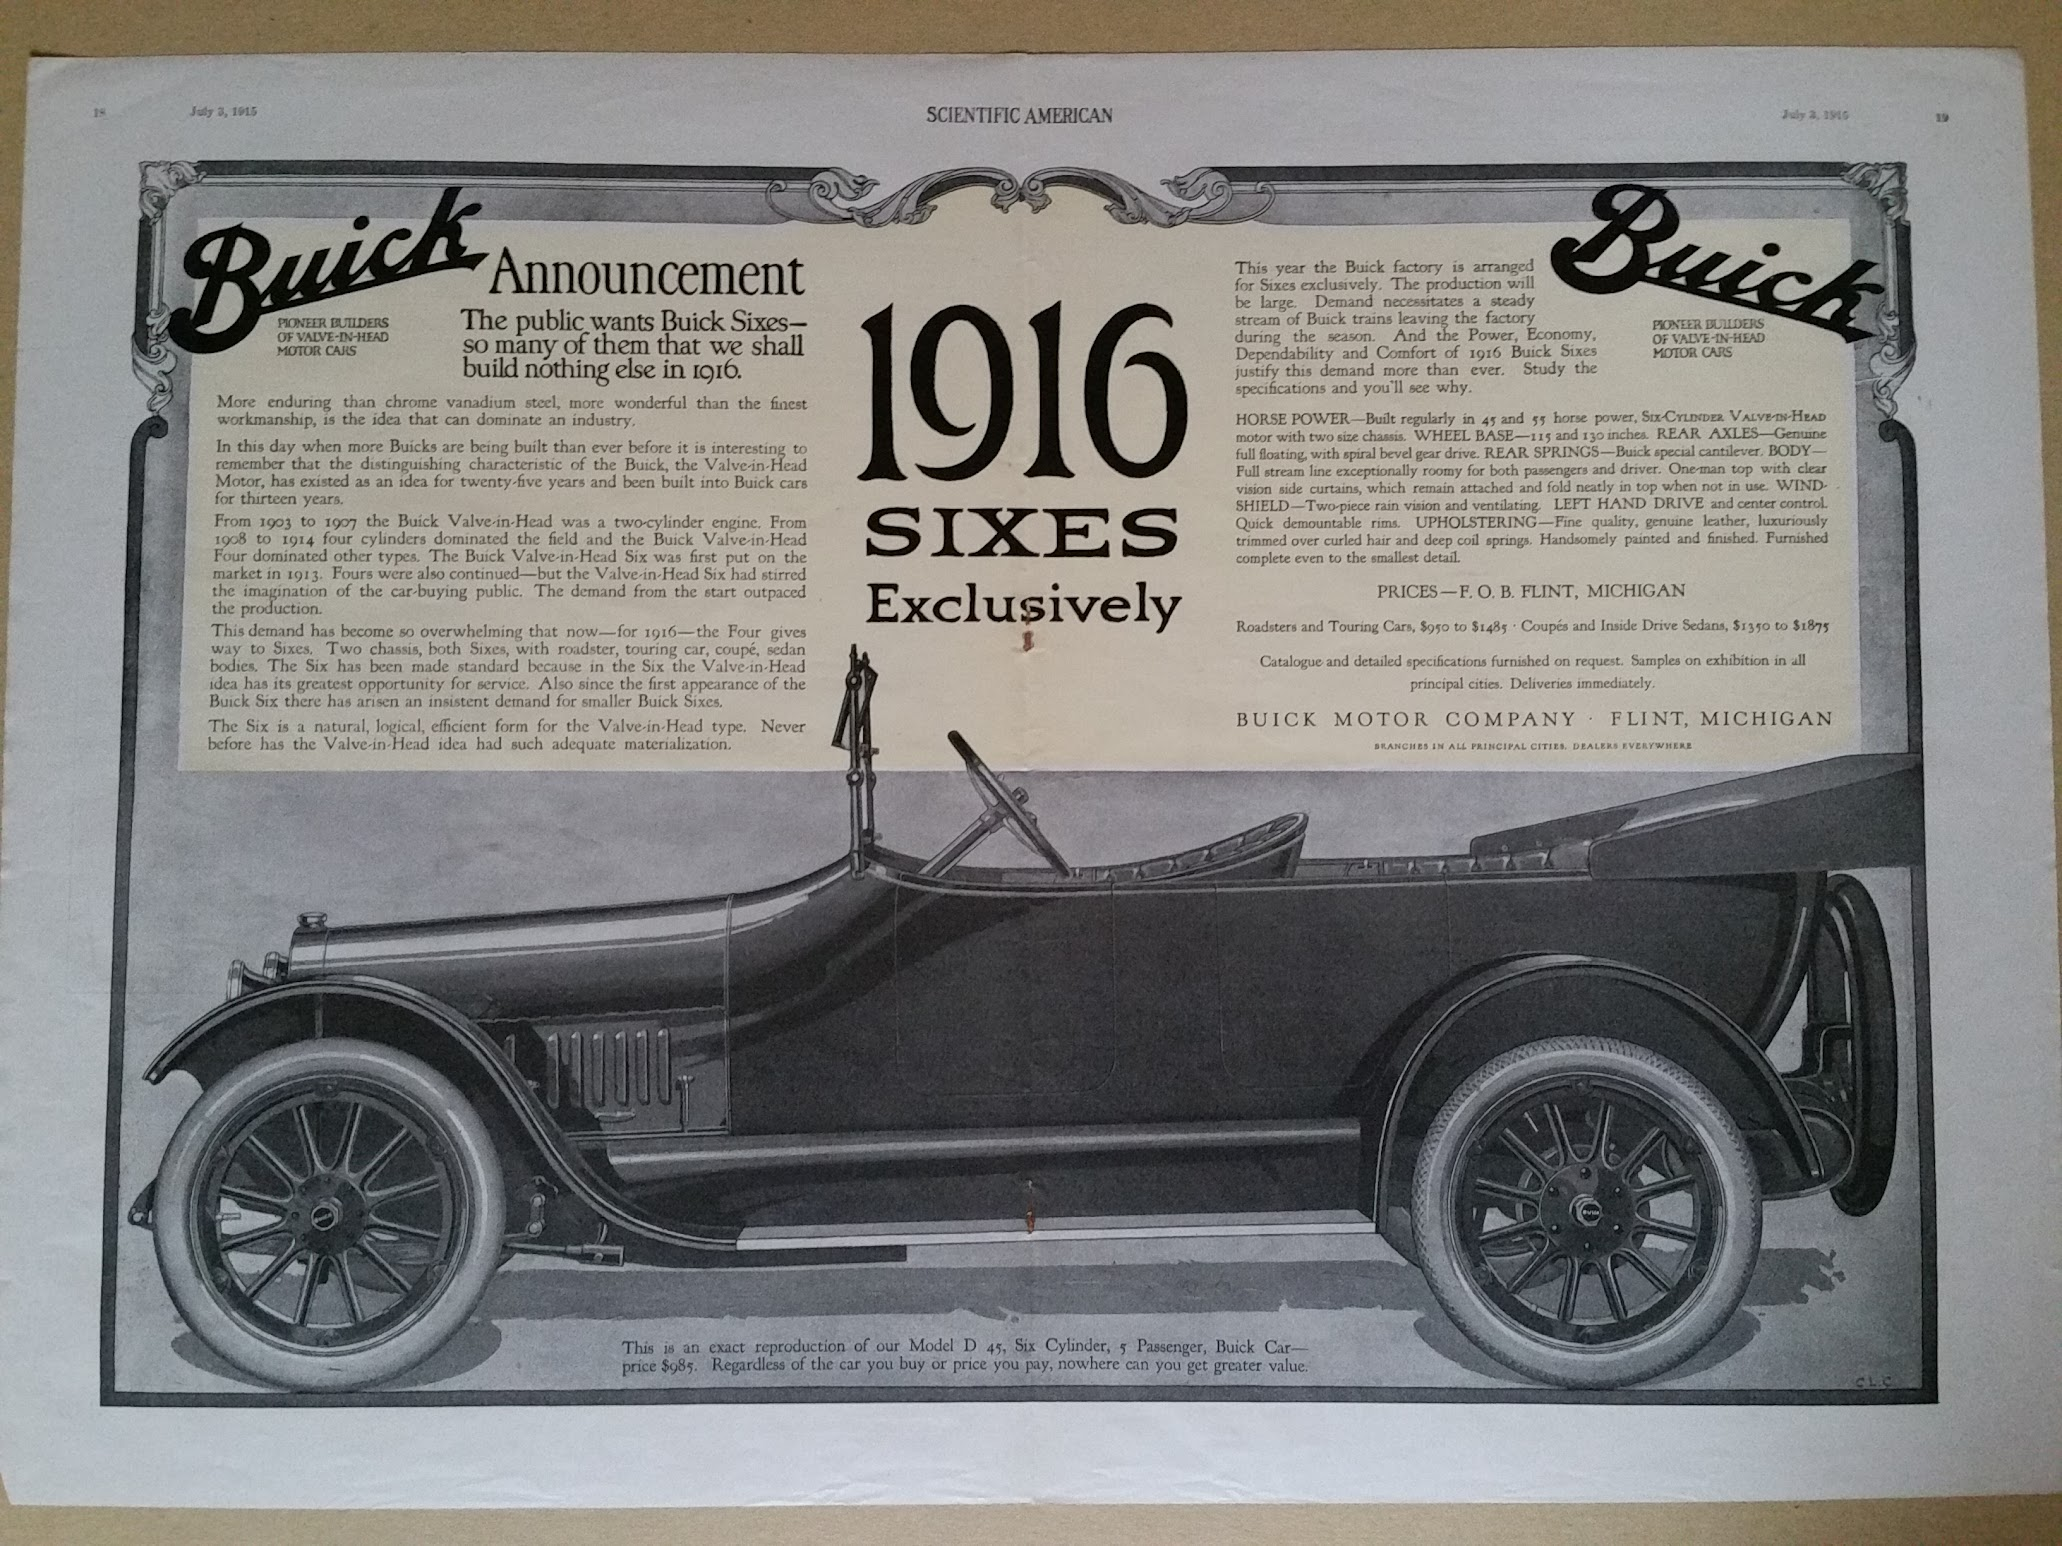 Buick 1916 SIXES Exclusively